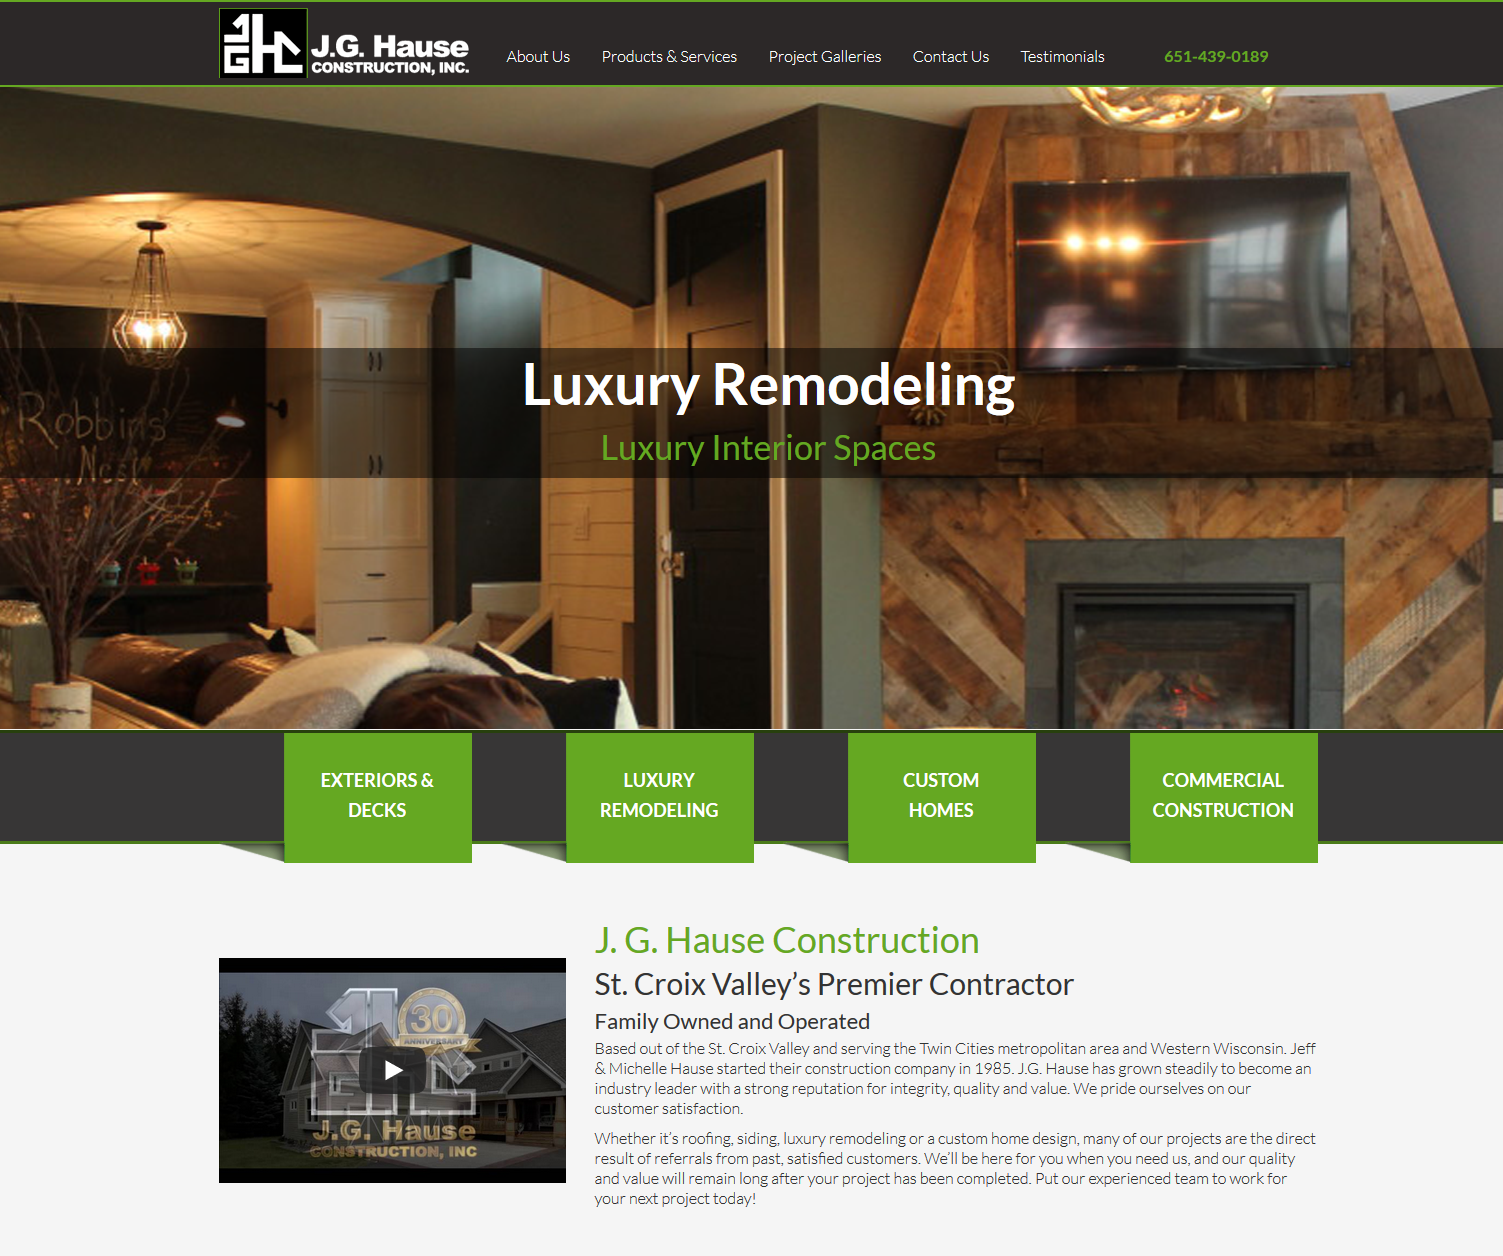 JG Hause website home page design